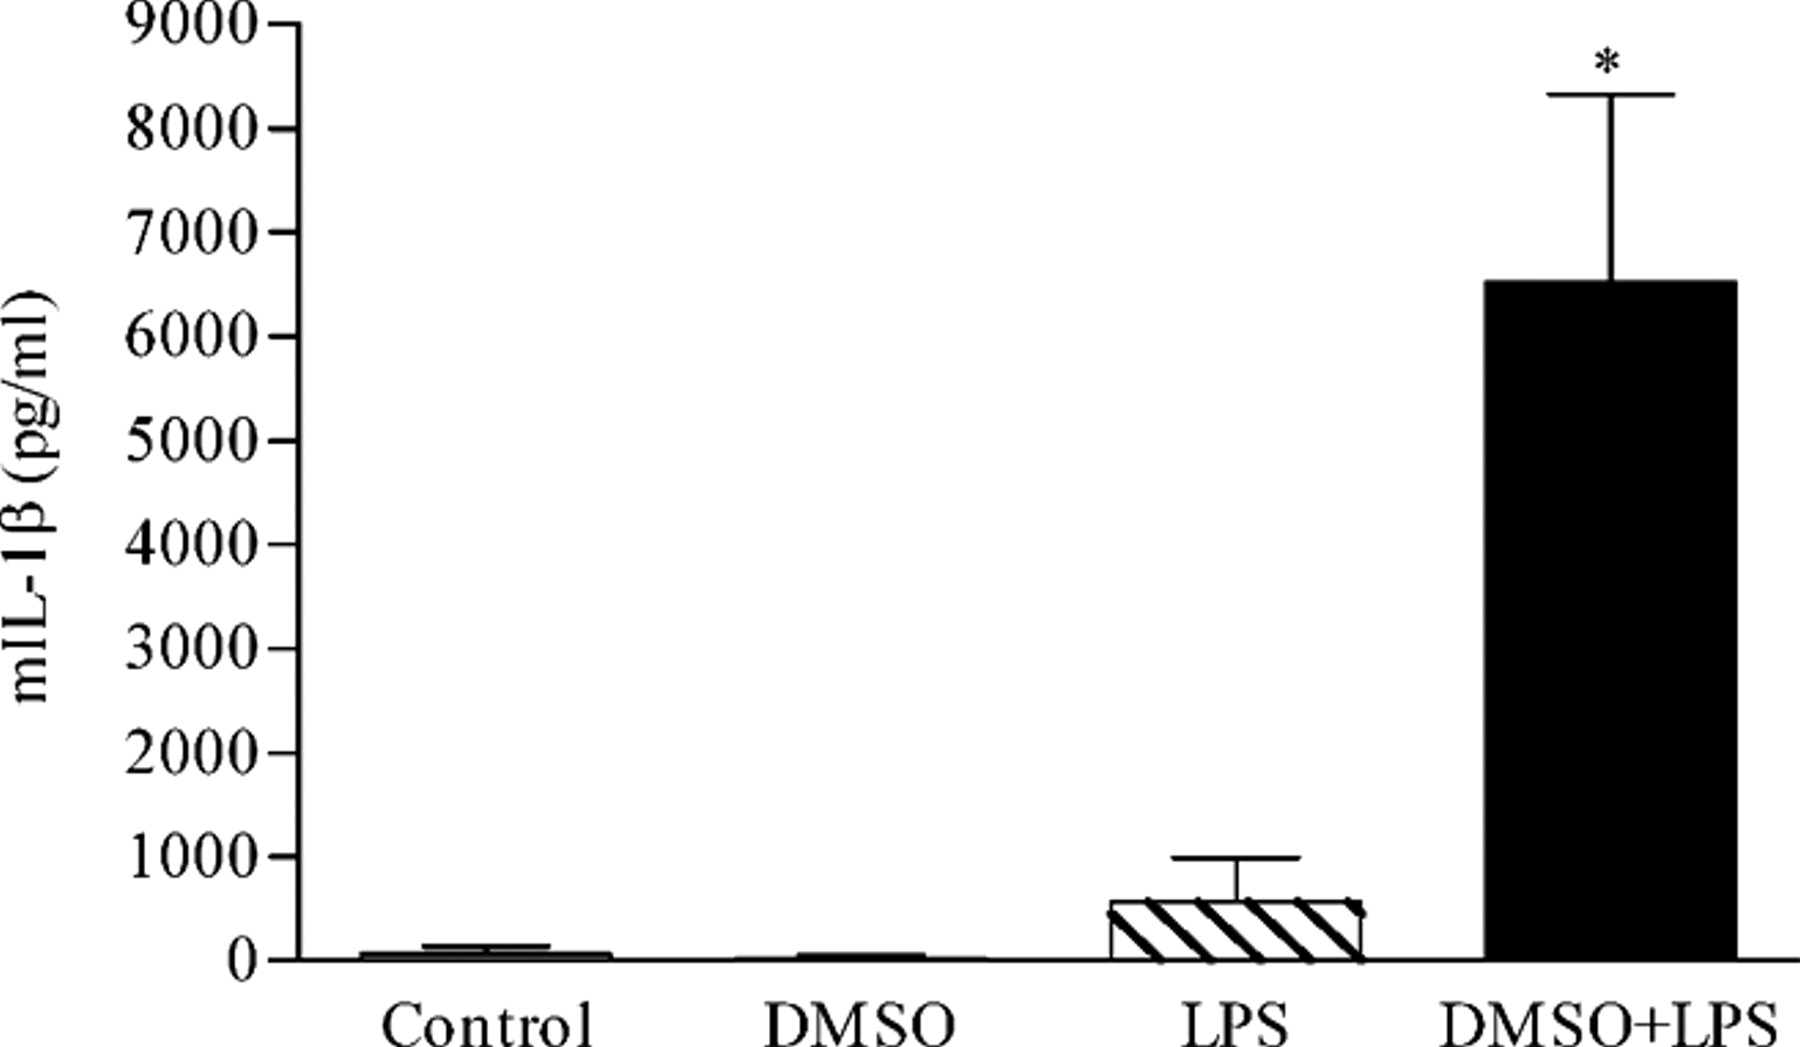 Mechanisms of Dimethyl Sulfoxide Augmentation of IL-1β Production